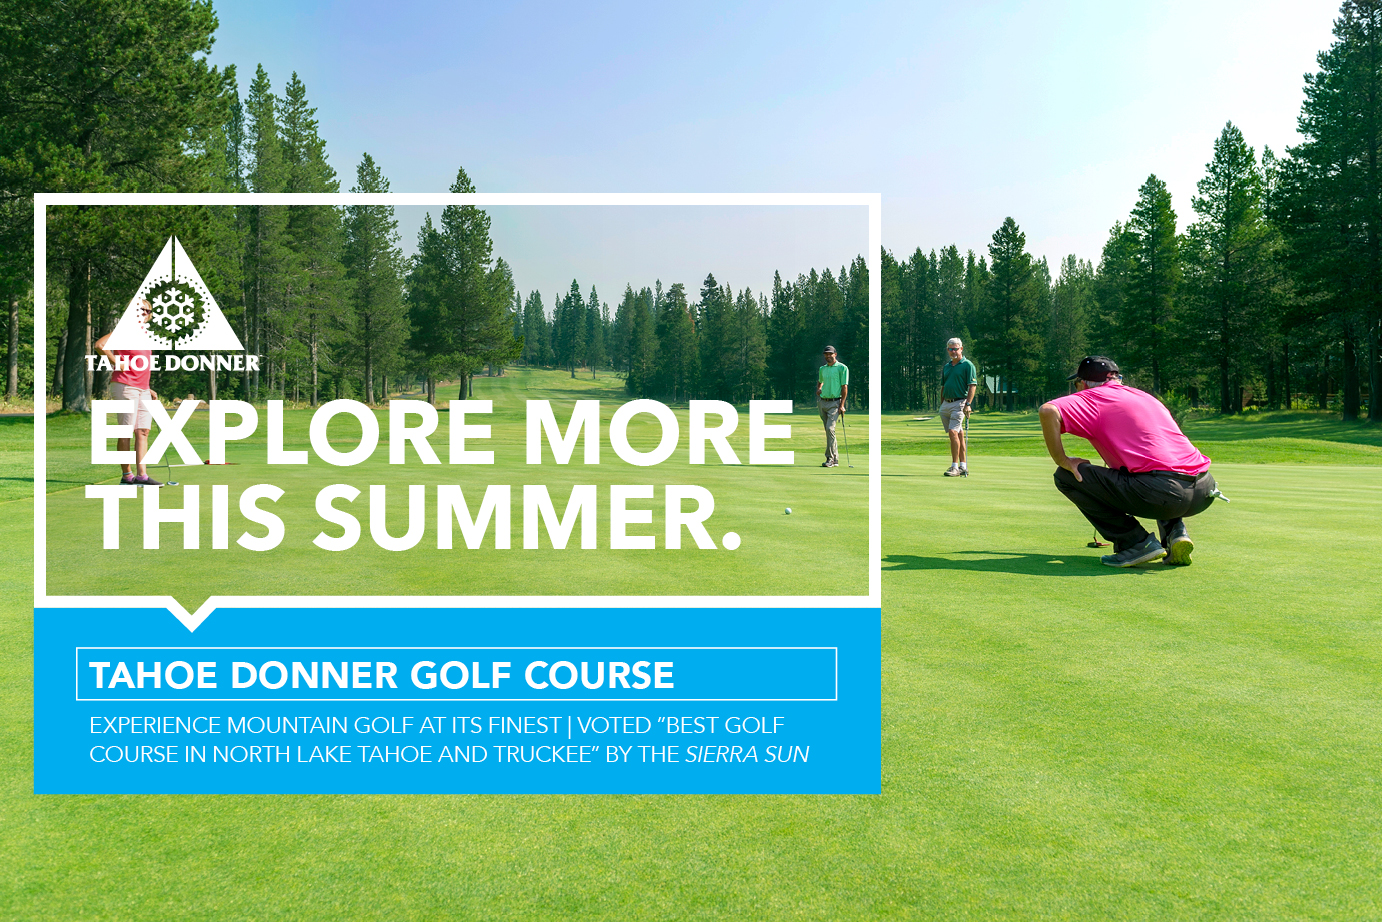 SummerCampaign_Golf_WebPage_1382x922 v1 image